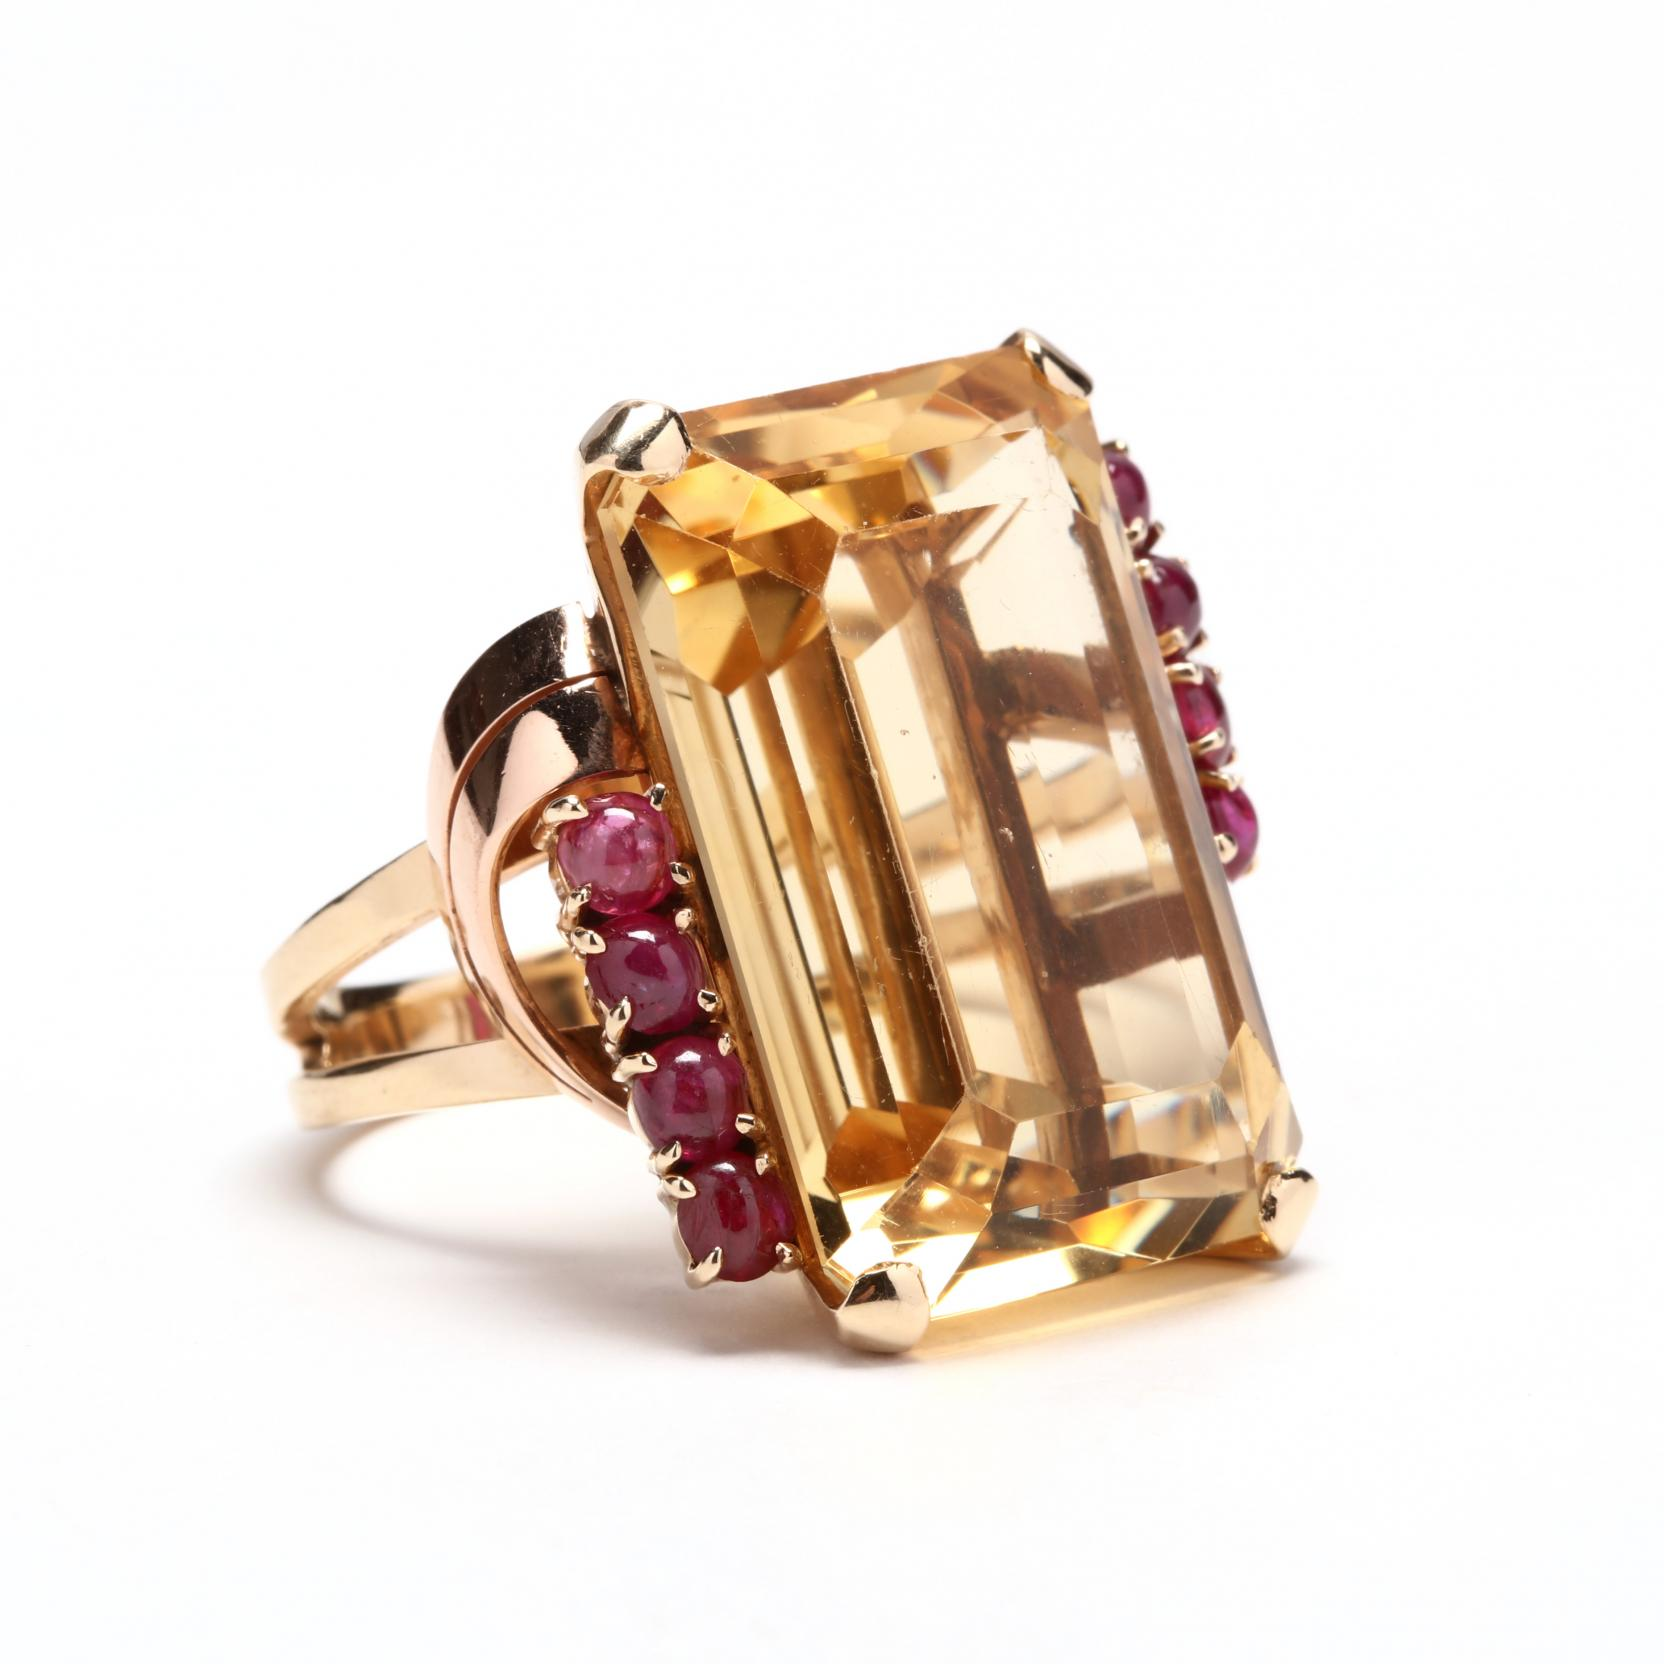 retro-14kt-gold-citrine-and-ruby-ring